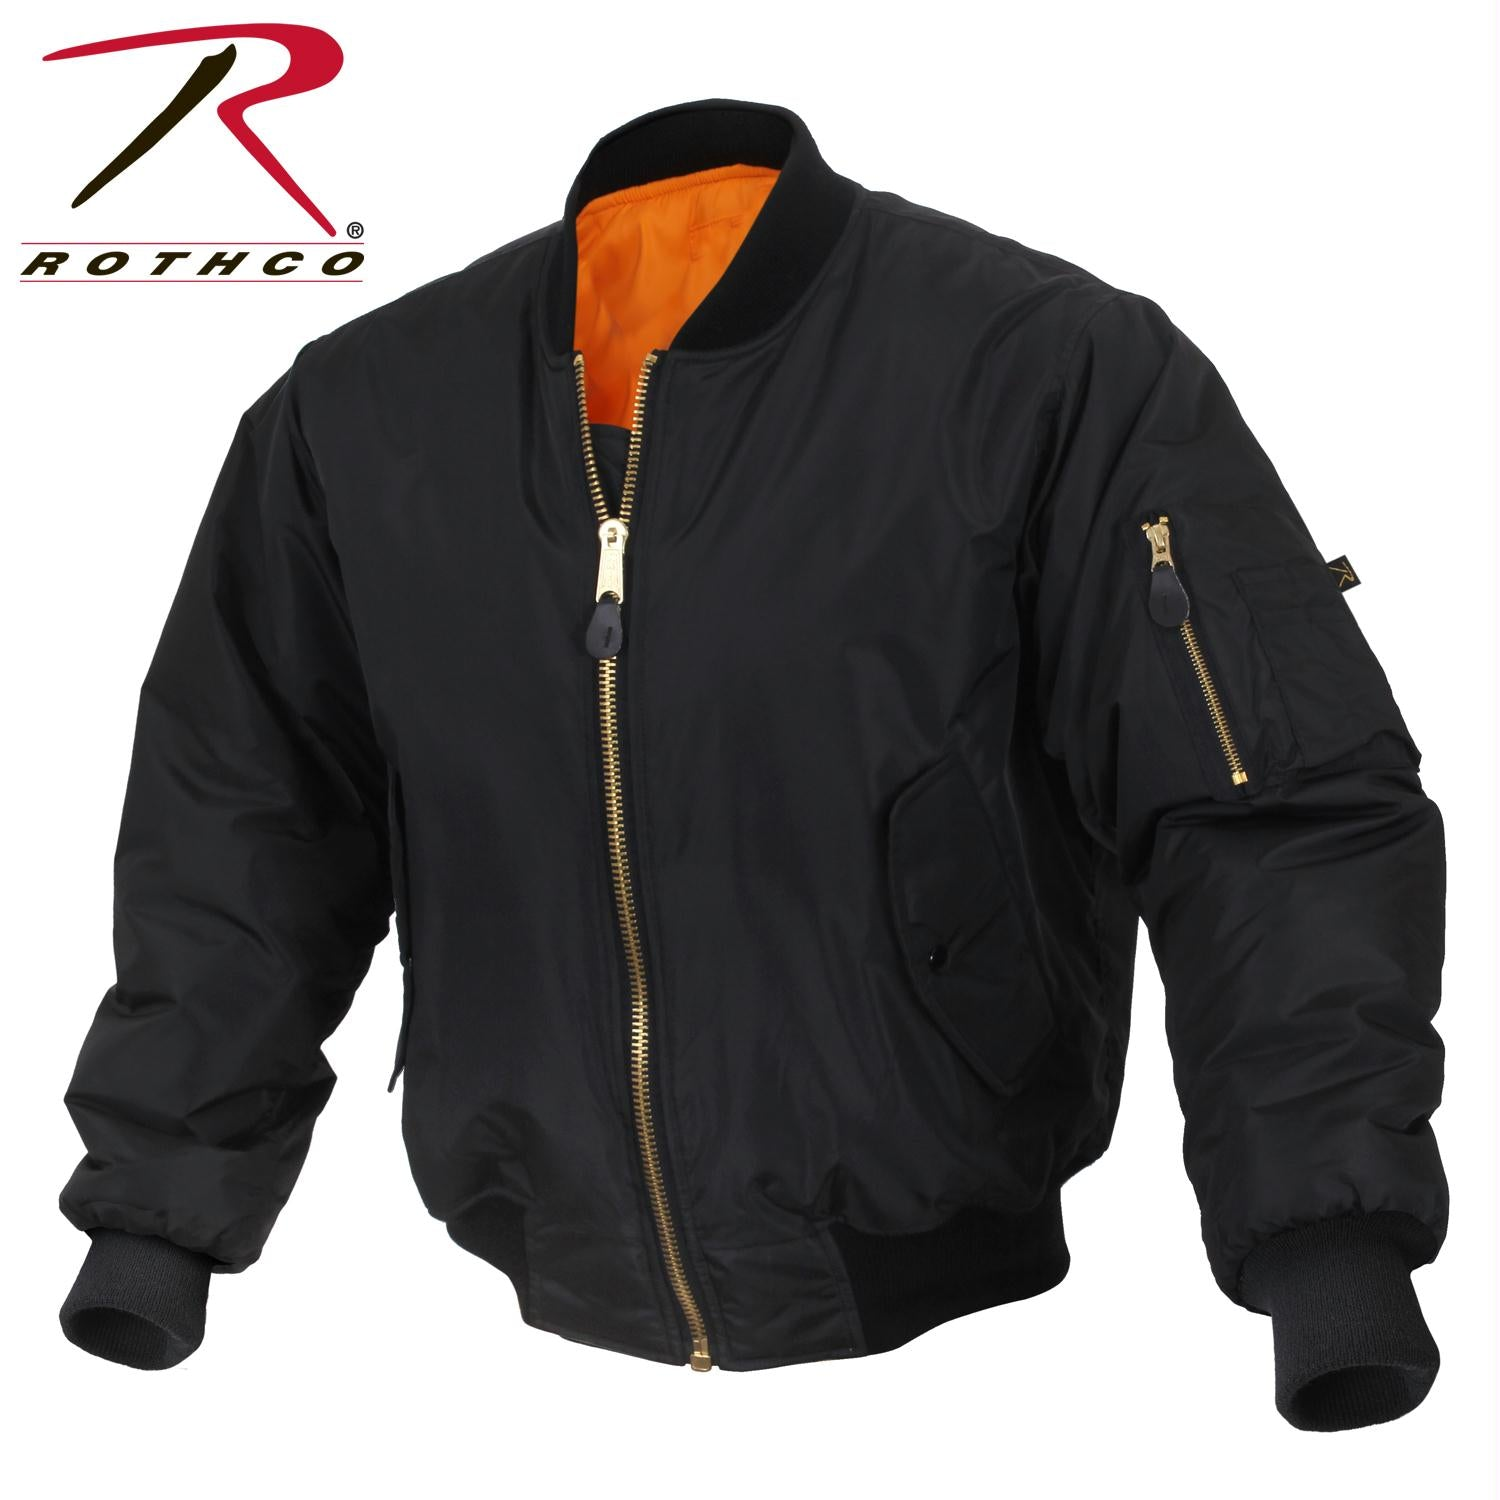 Rothco Enhanced Nylon MA-1 Flight Jacket - Black / 3XL